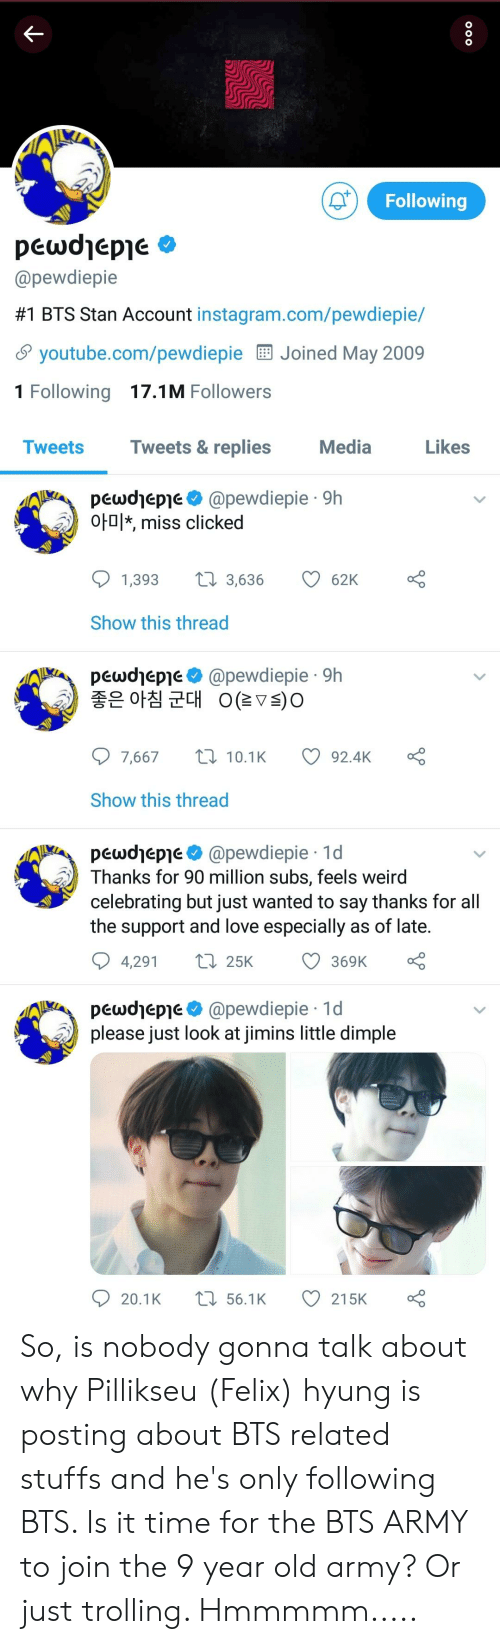 Instagram, Love, and Stan: Following  pewdjepje  @pewdiepie  #1 BTS Stan Account instagram.com/pewdiepe/  youtube.com/pewdiepie  Joined May 2009  1 Following 17.1M Followers  Tweets  Tweets &replies  Media  Likes  pewdjeple@pewdiepie 9h  ot0* miss clicked  Show this thread  pewdjeple@pewdiepie 9h  가 좋은 아침 군대 OCTs)。  7,667  10.1K  92.4K  Show this thread  pewdjeple@pewdiepie 1d  Thanks for 90 million subs, feels weird  celebrating but just wanted to say thanks for all  the support and love especially as of late.  4,291 t  369K  pewdhepie@pewdiepie 1d  please just look at jimins little dimple So, is nobody gonna talk about why Pillikseu (Felix) hyung is posting about BTS related stuffs and he's only following BTS. Is it time for the BTS ARMY to join the 9 year old army? Or just trolling. Hmmmmm.....